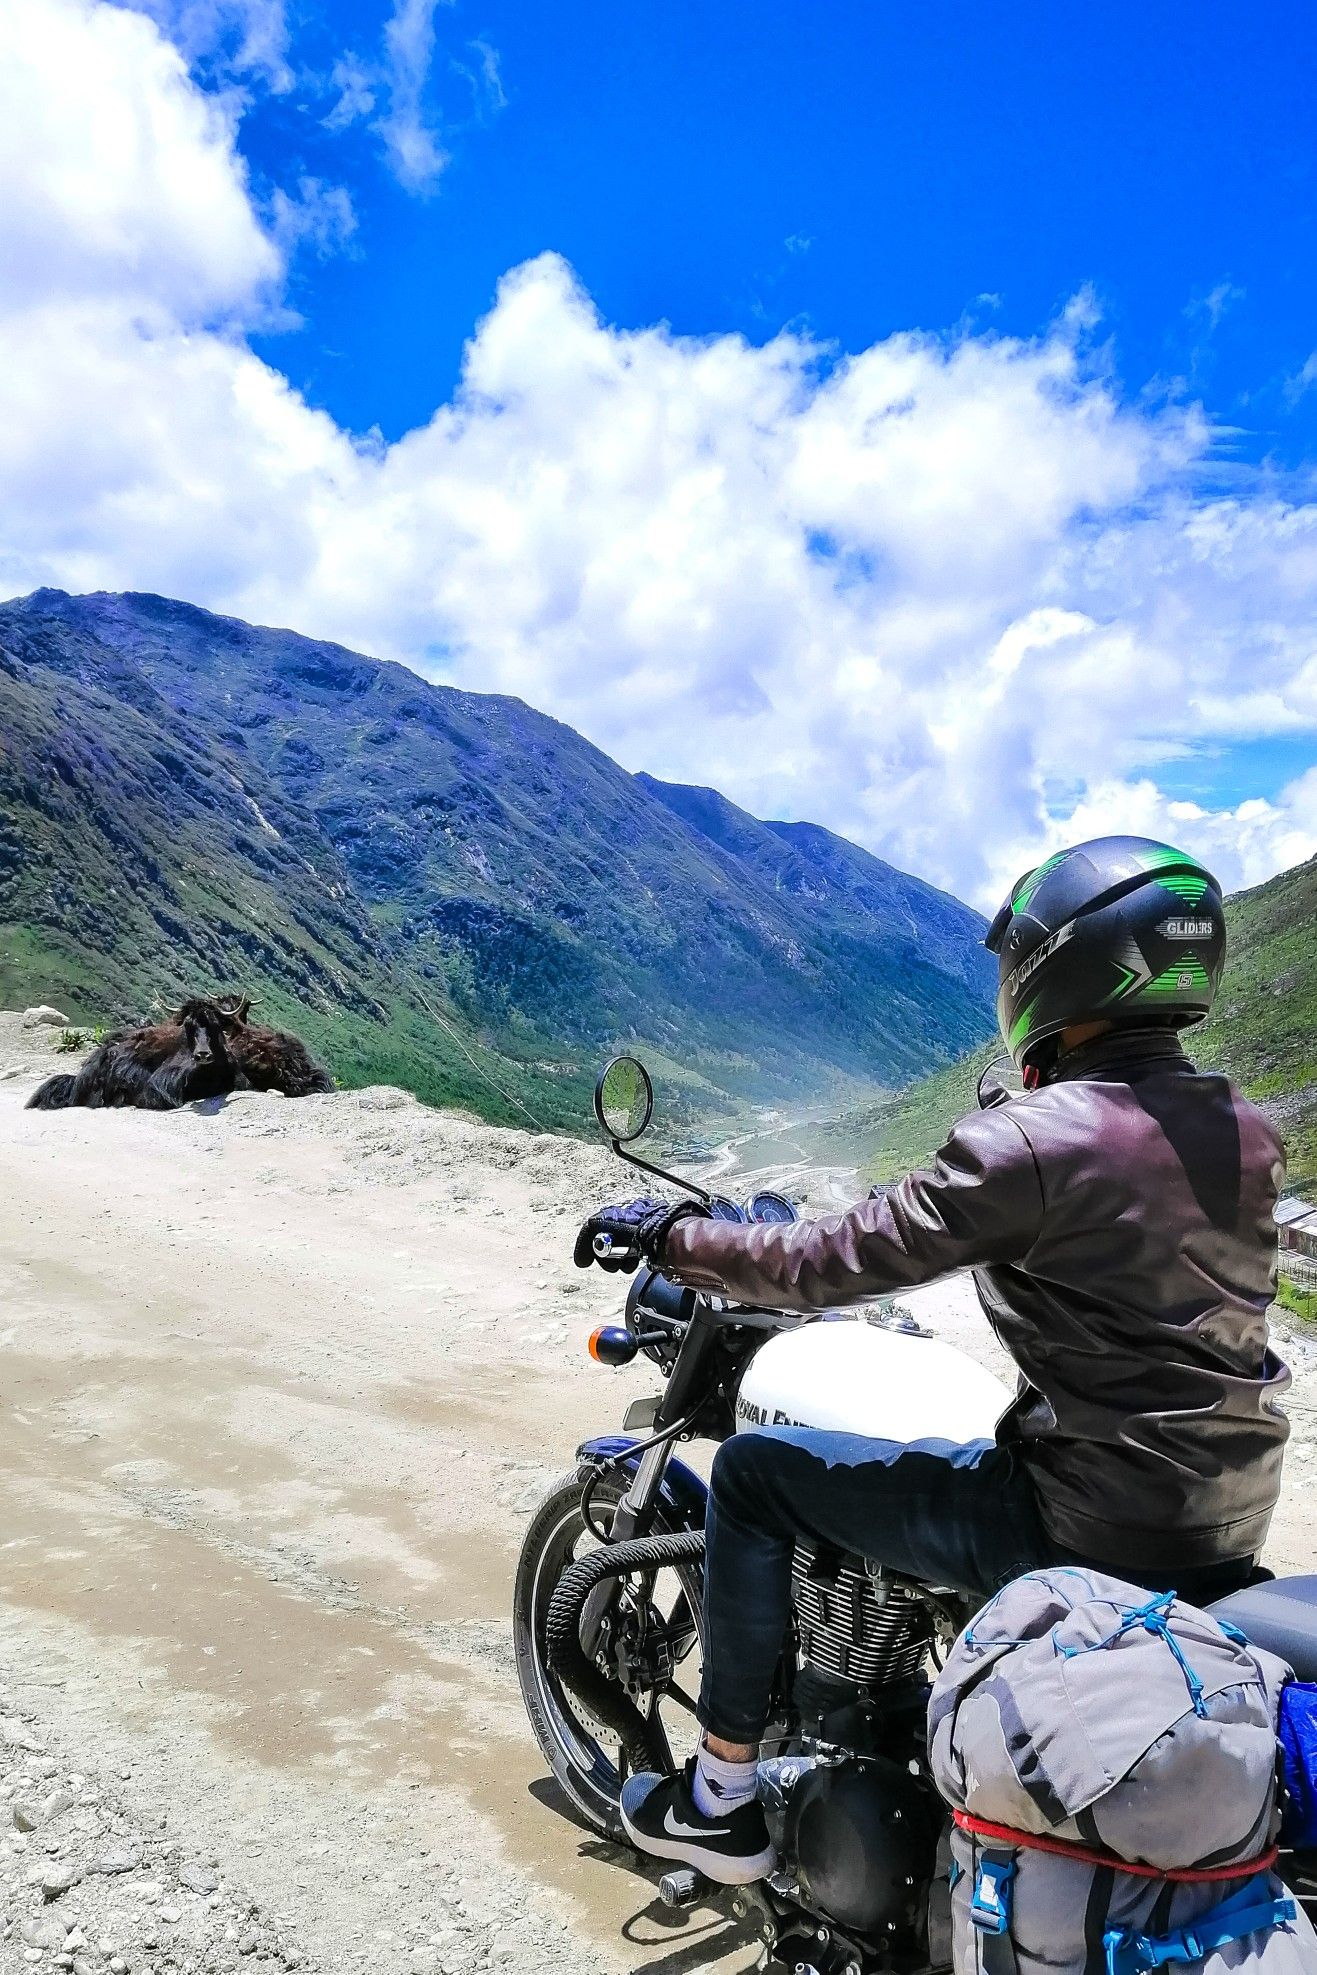 Pin by The Day Traveller on In India in 2020 Mountain